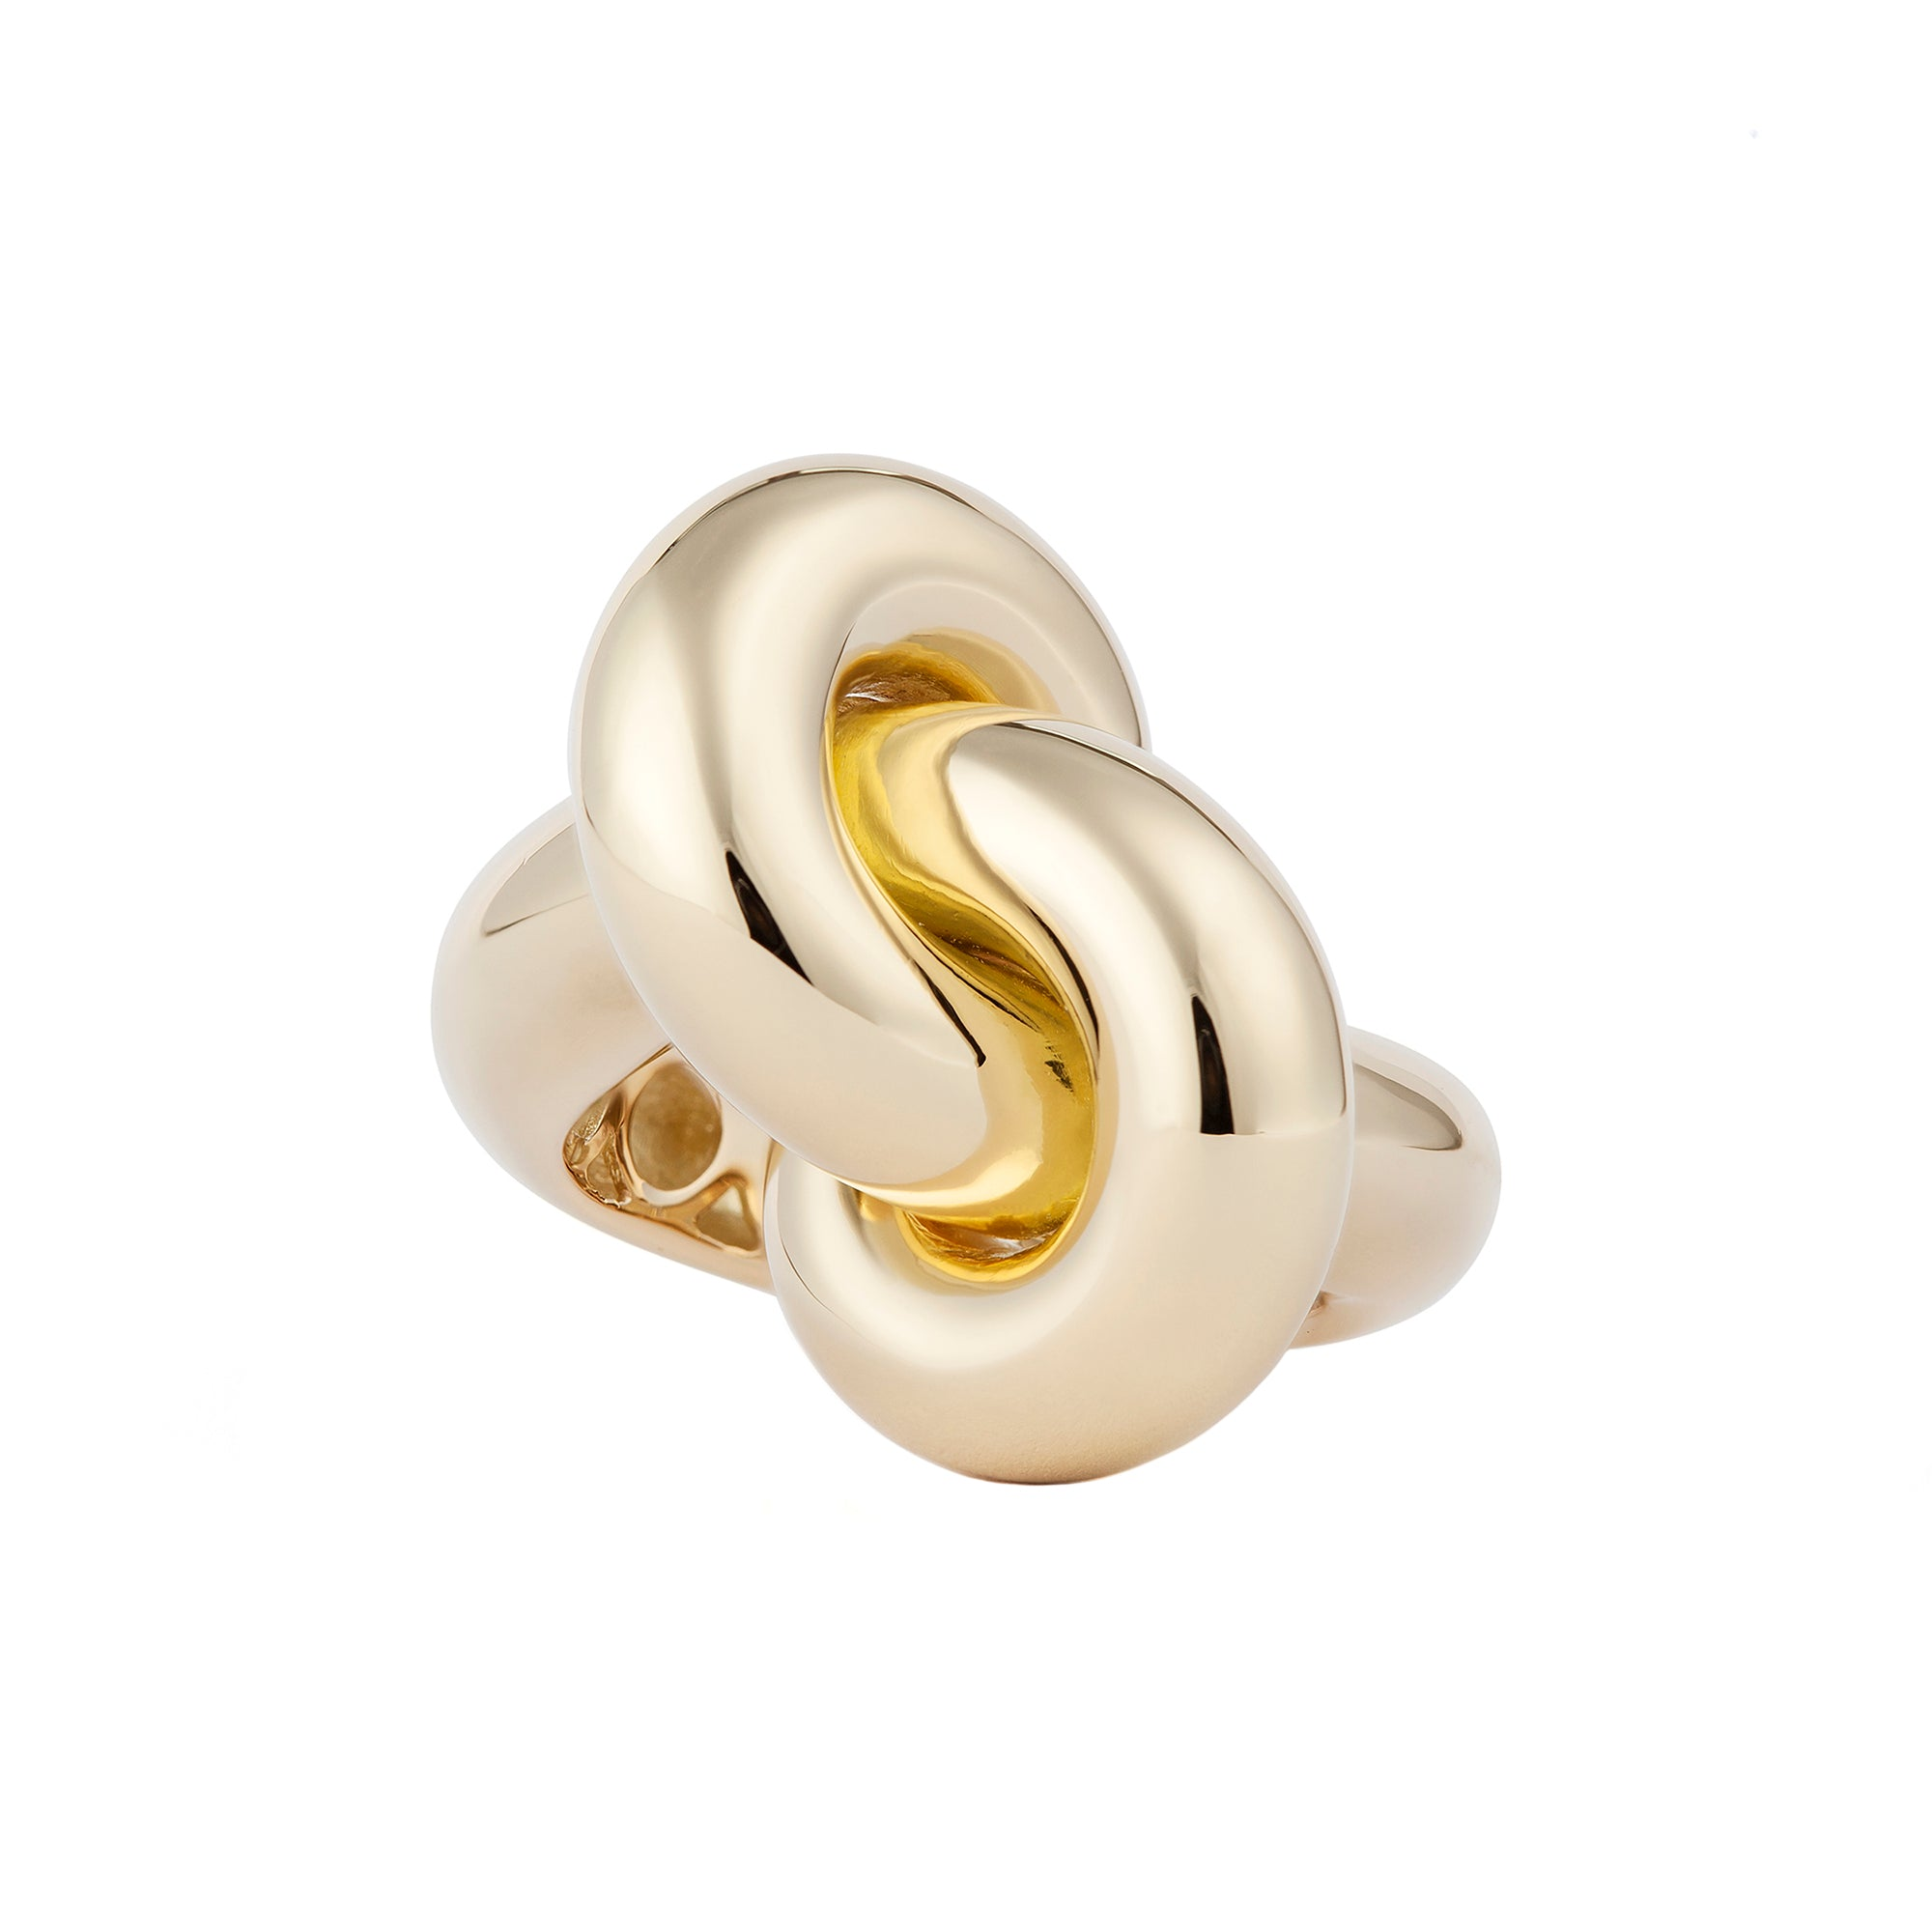 Fat Knot Ring - Engelbert - Ring | Broken English Jewelry